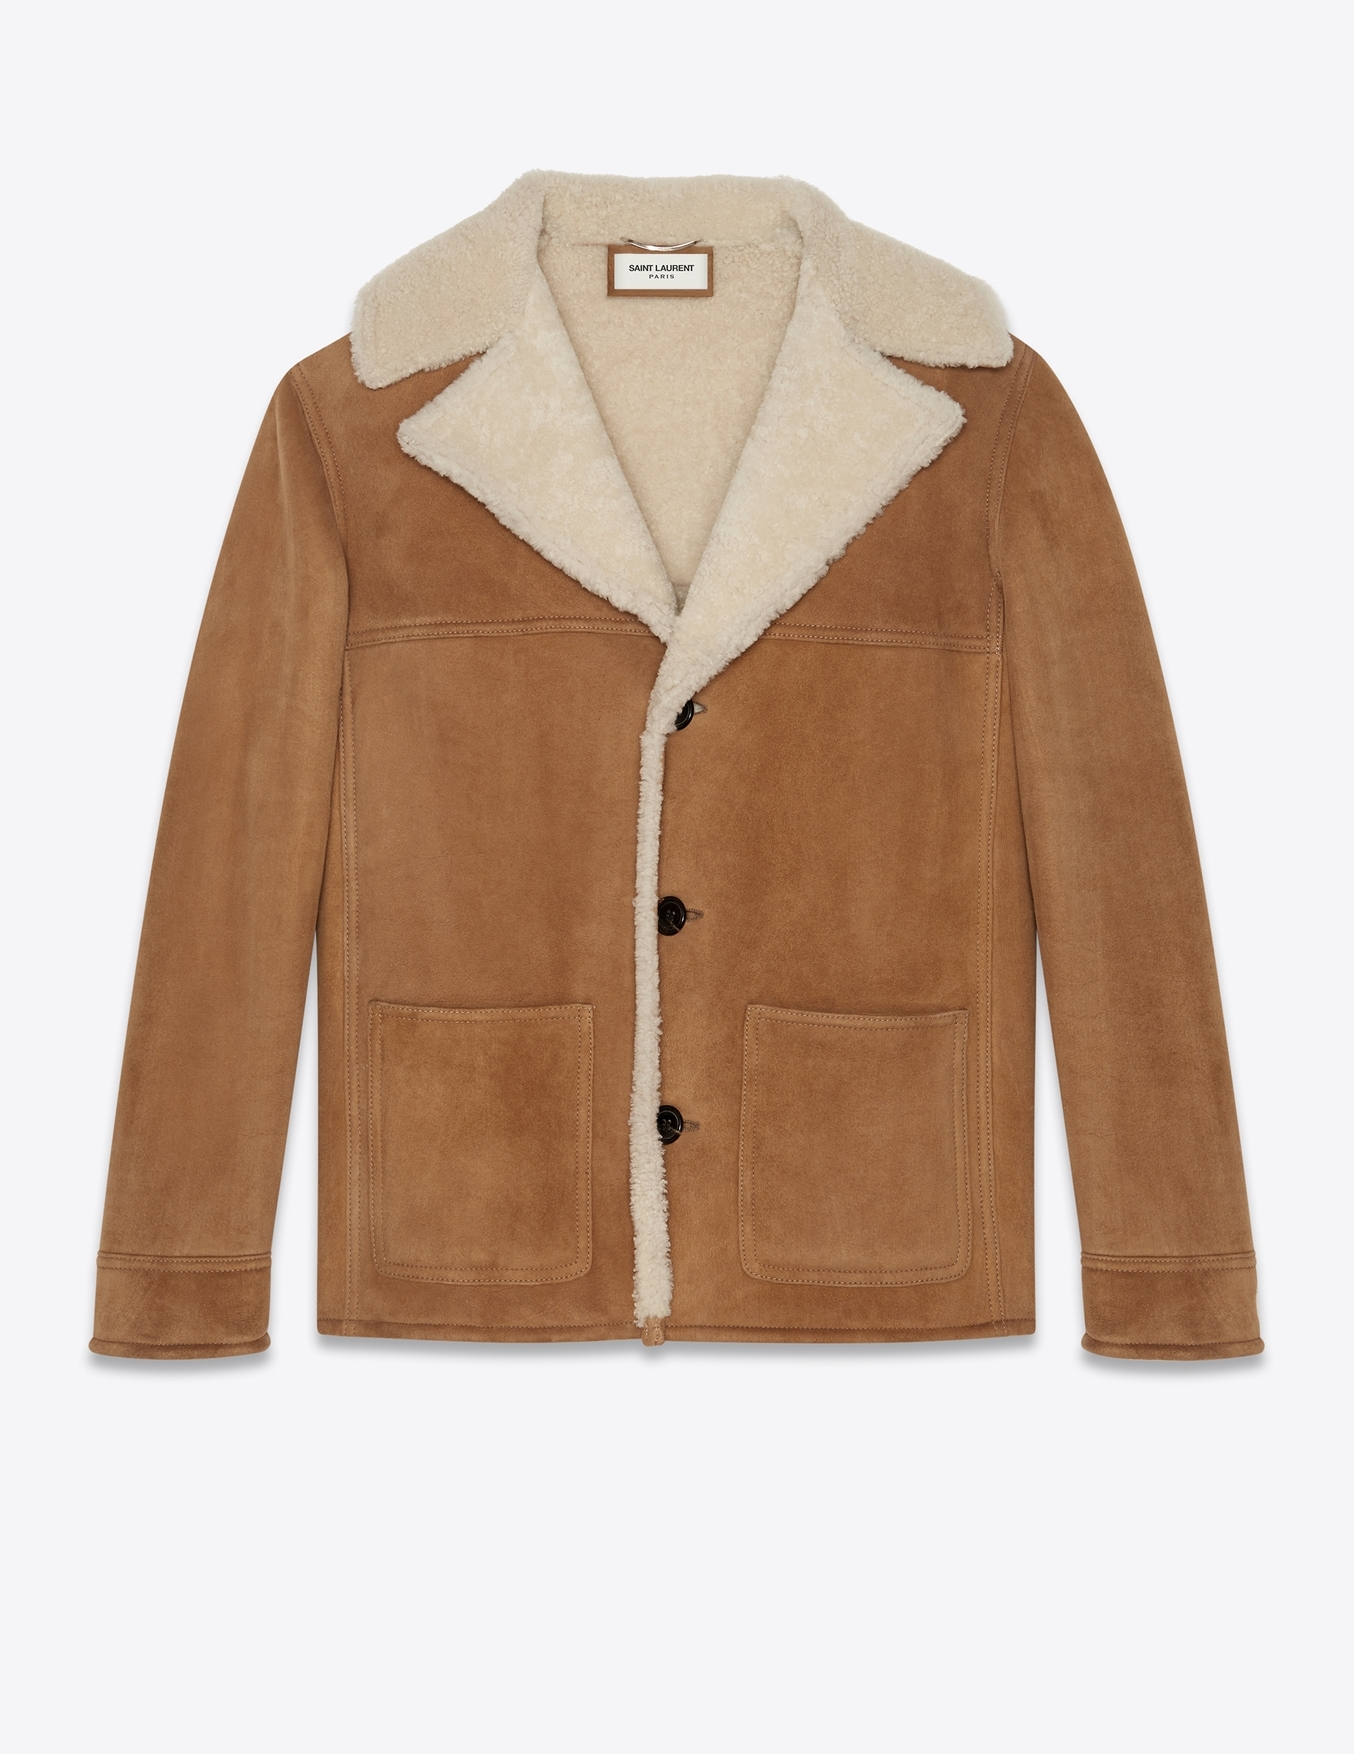 Saint Laurent Trapper Coat